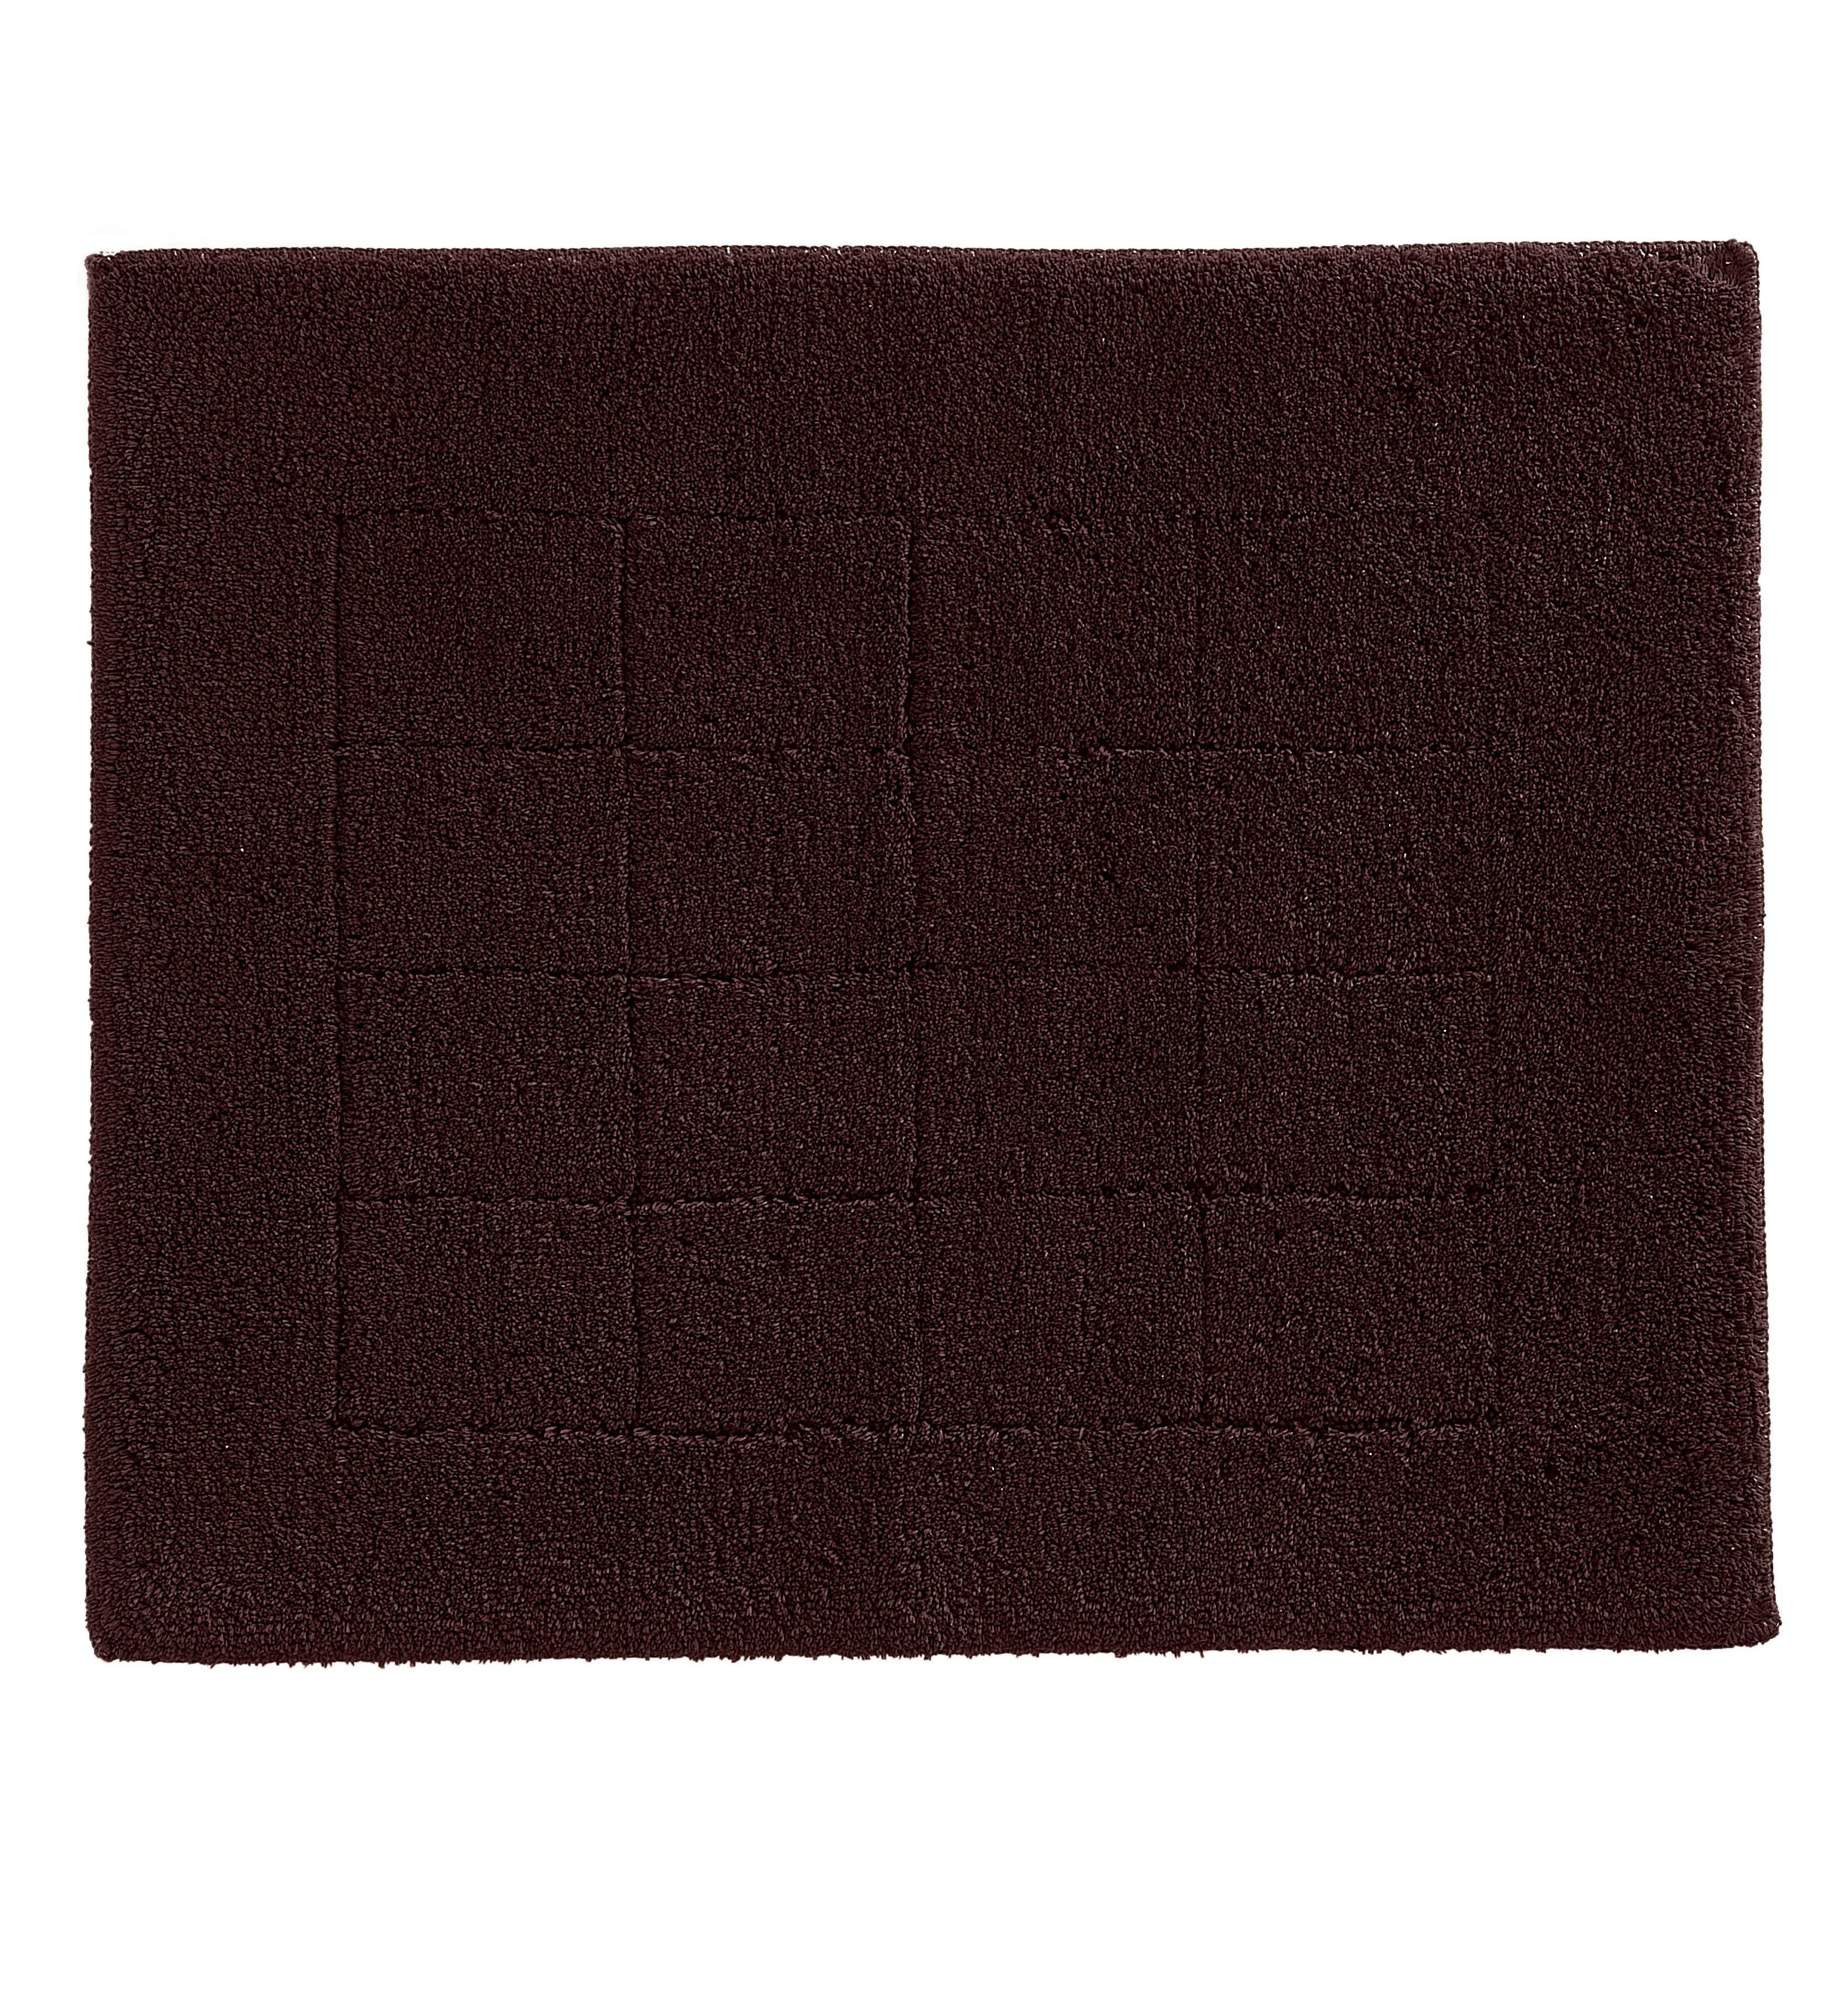 Exclusive bath mat range in chocolate